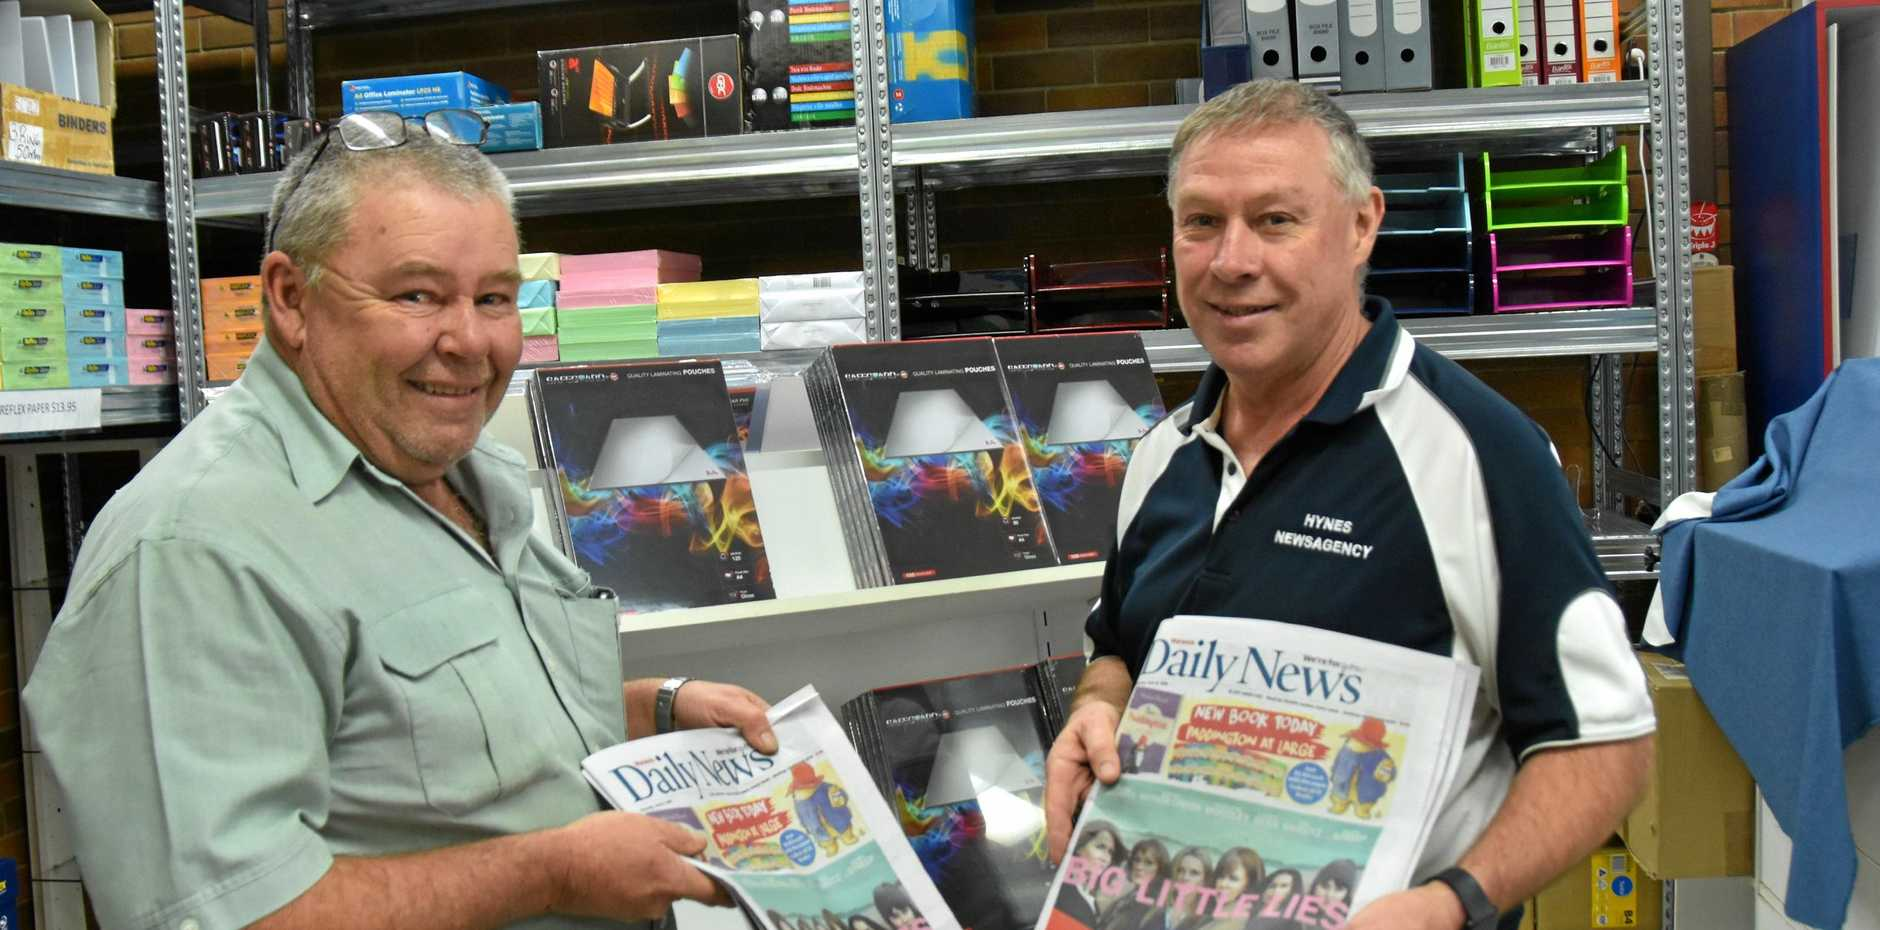 Happy National Newsagent Week to the hard-working Warwick brothers Peter and Paul Hynes, at Hynes Newsagency.